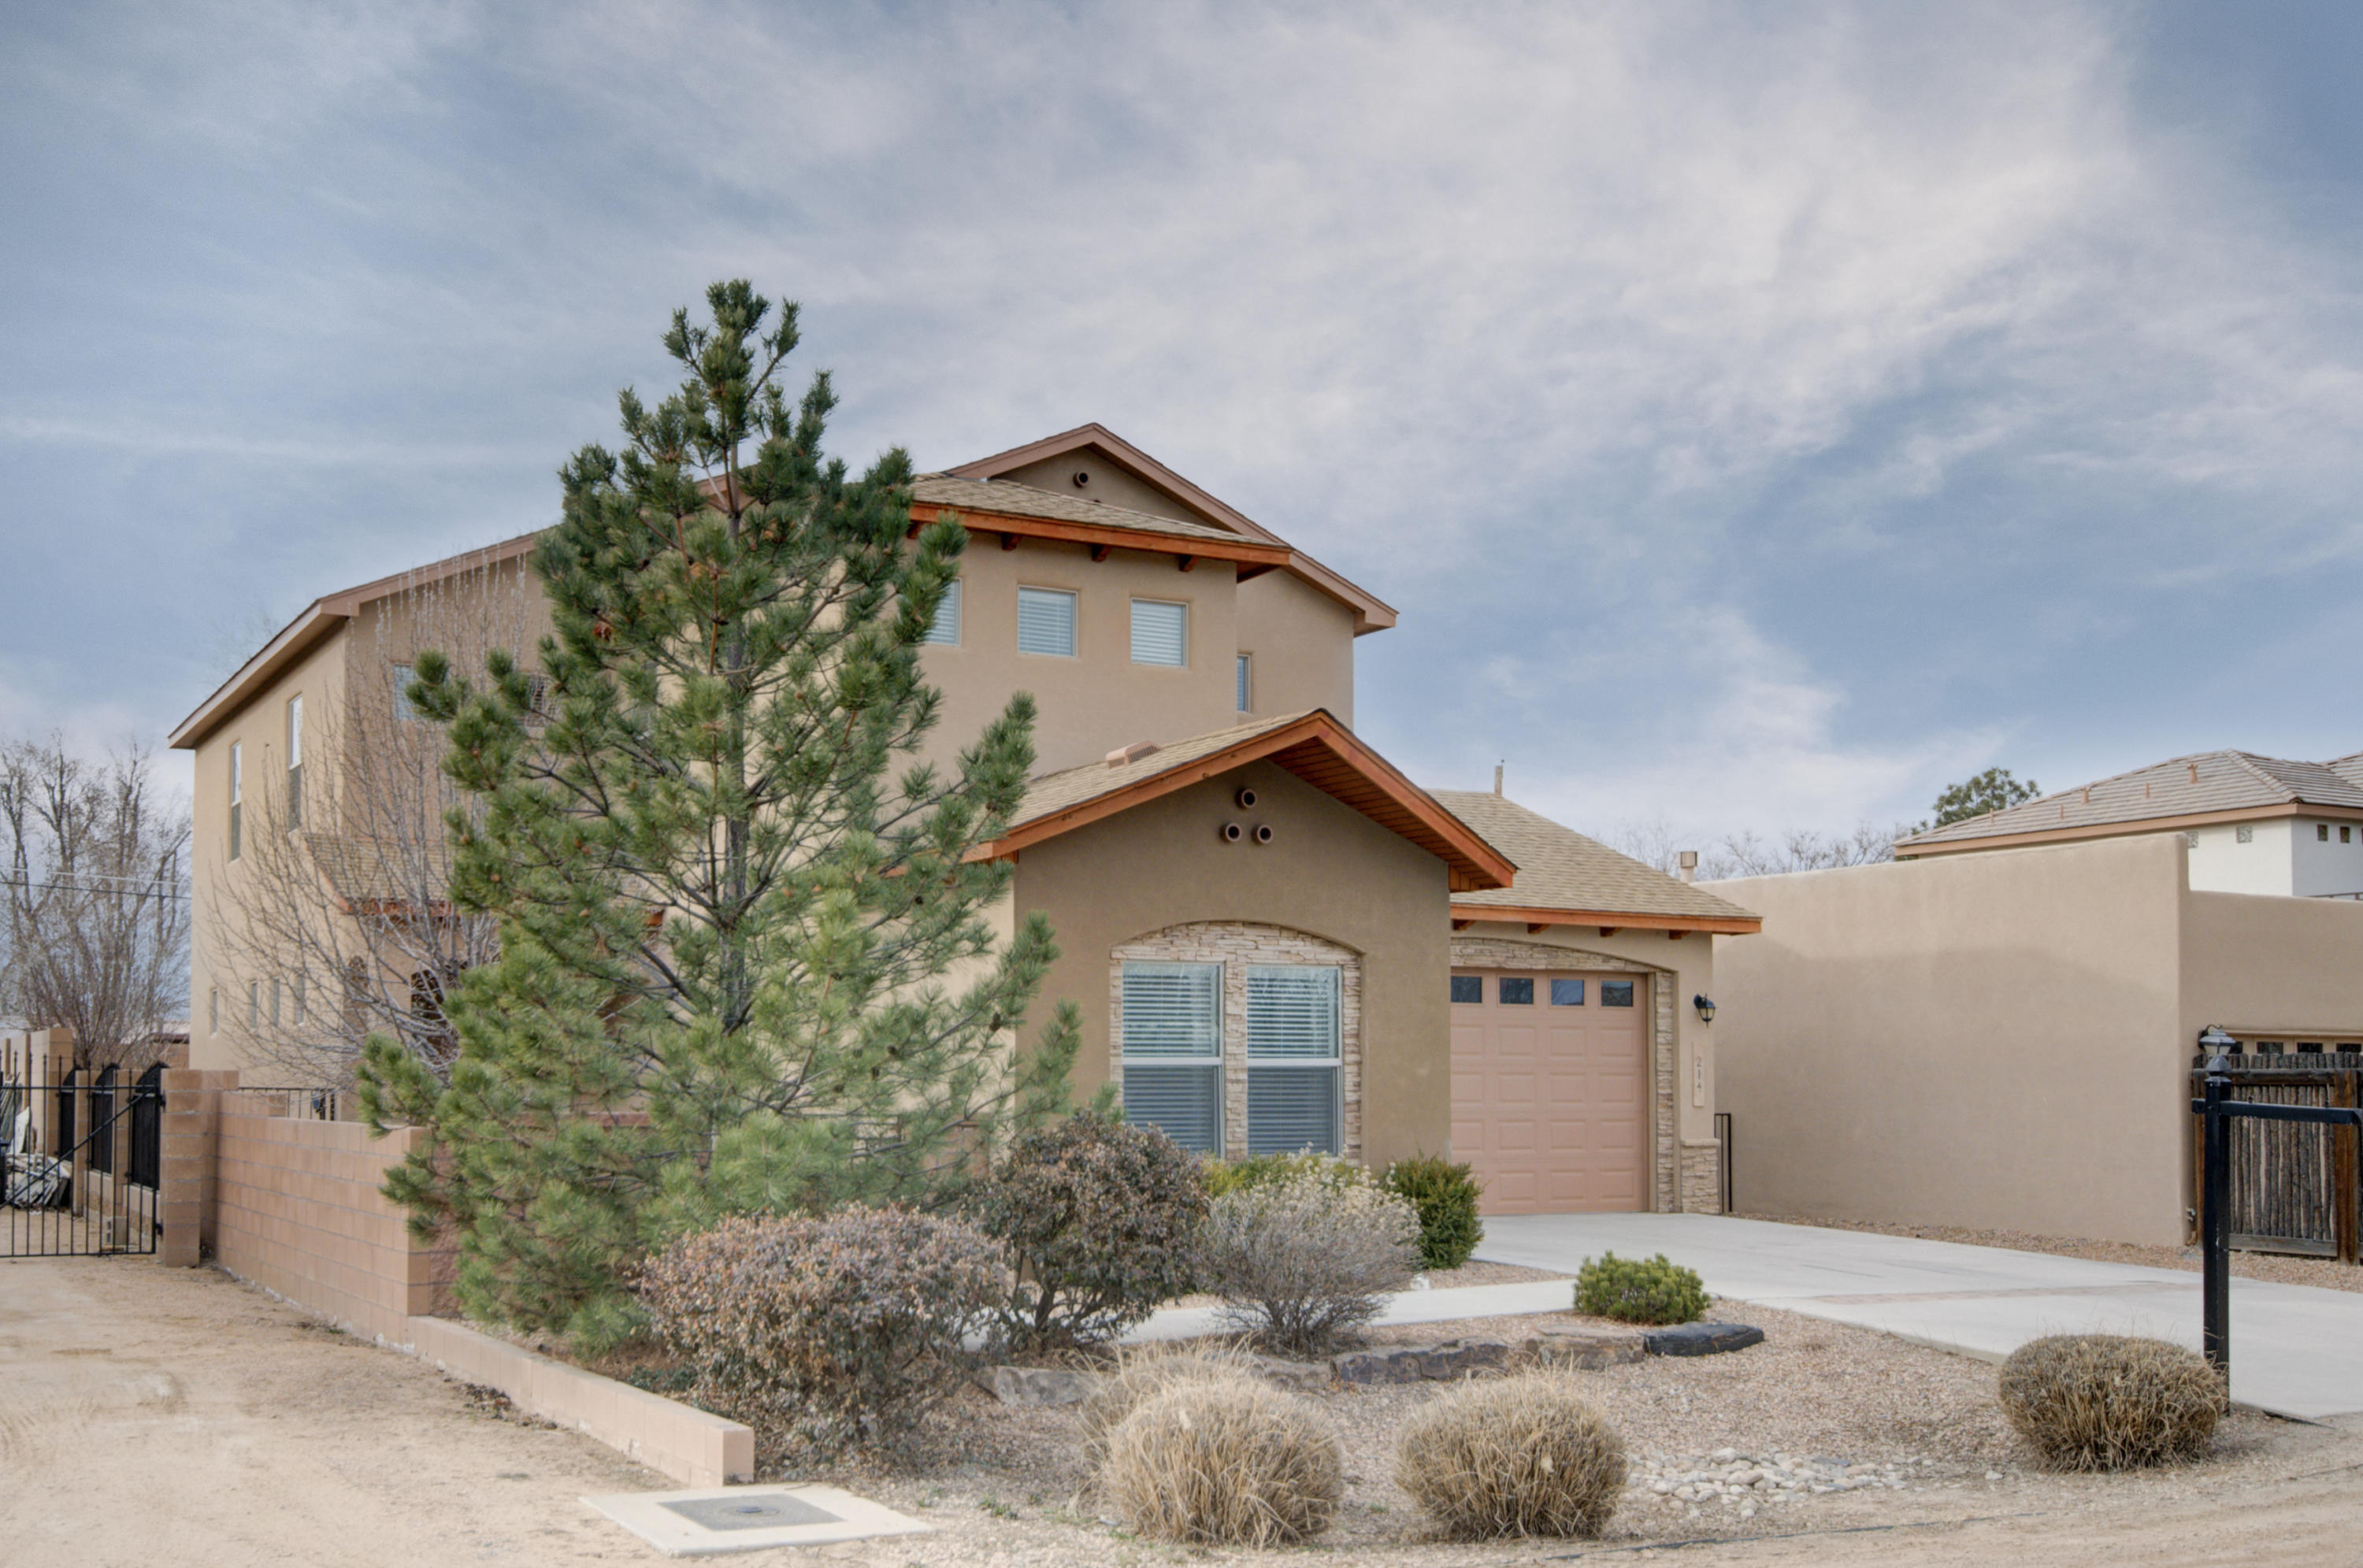 214 NW Nico Trail, Northwest Albuquerque and Northwest Heights, New Mexico